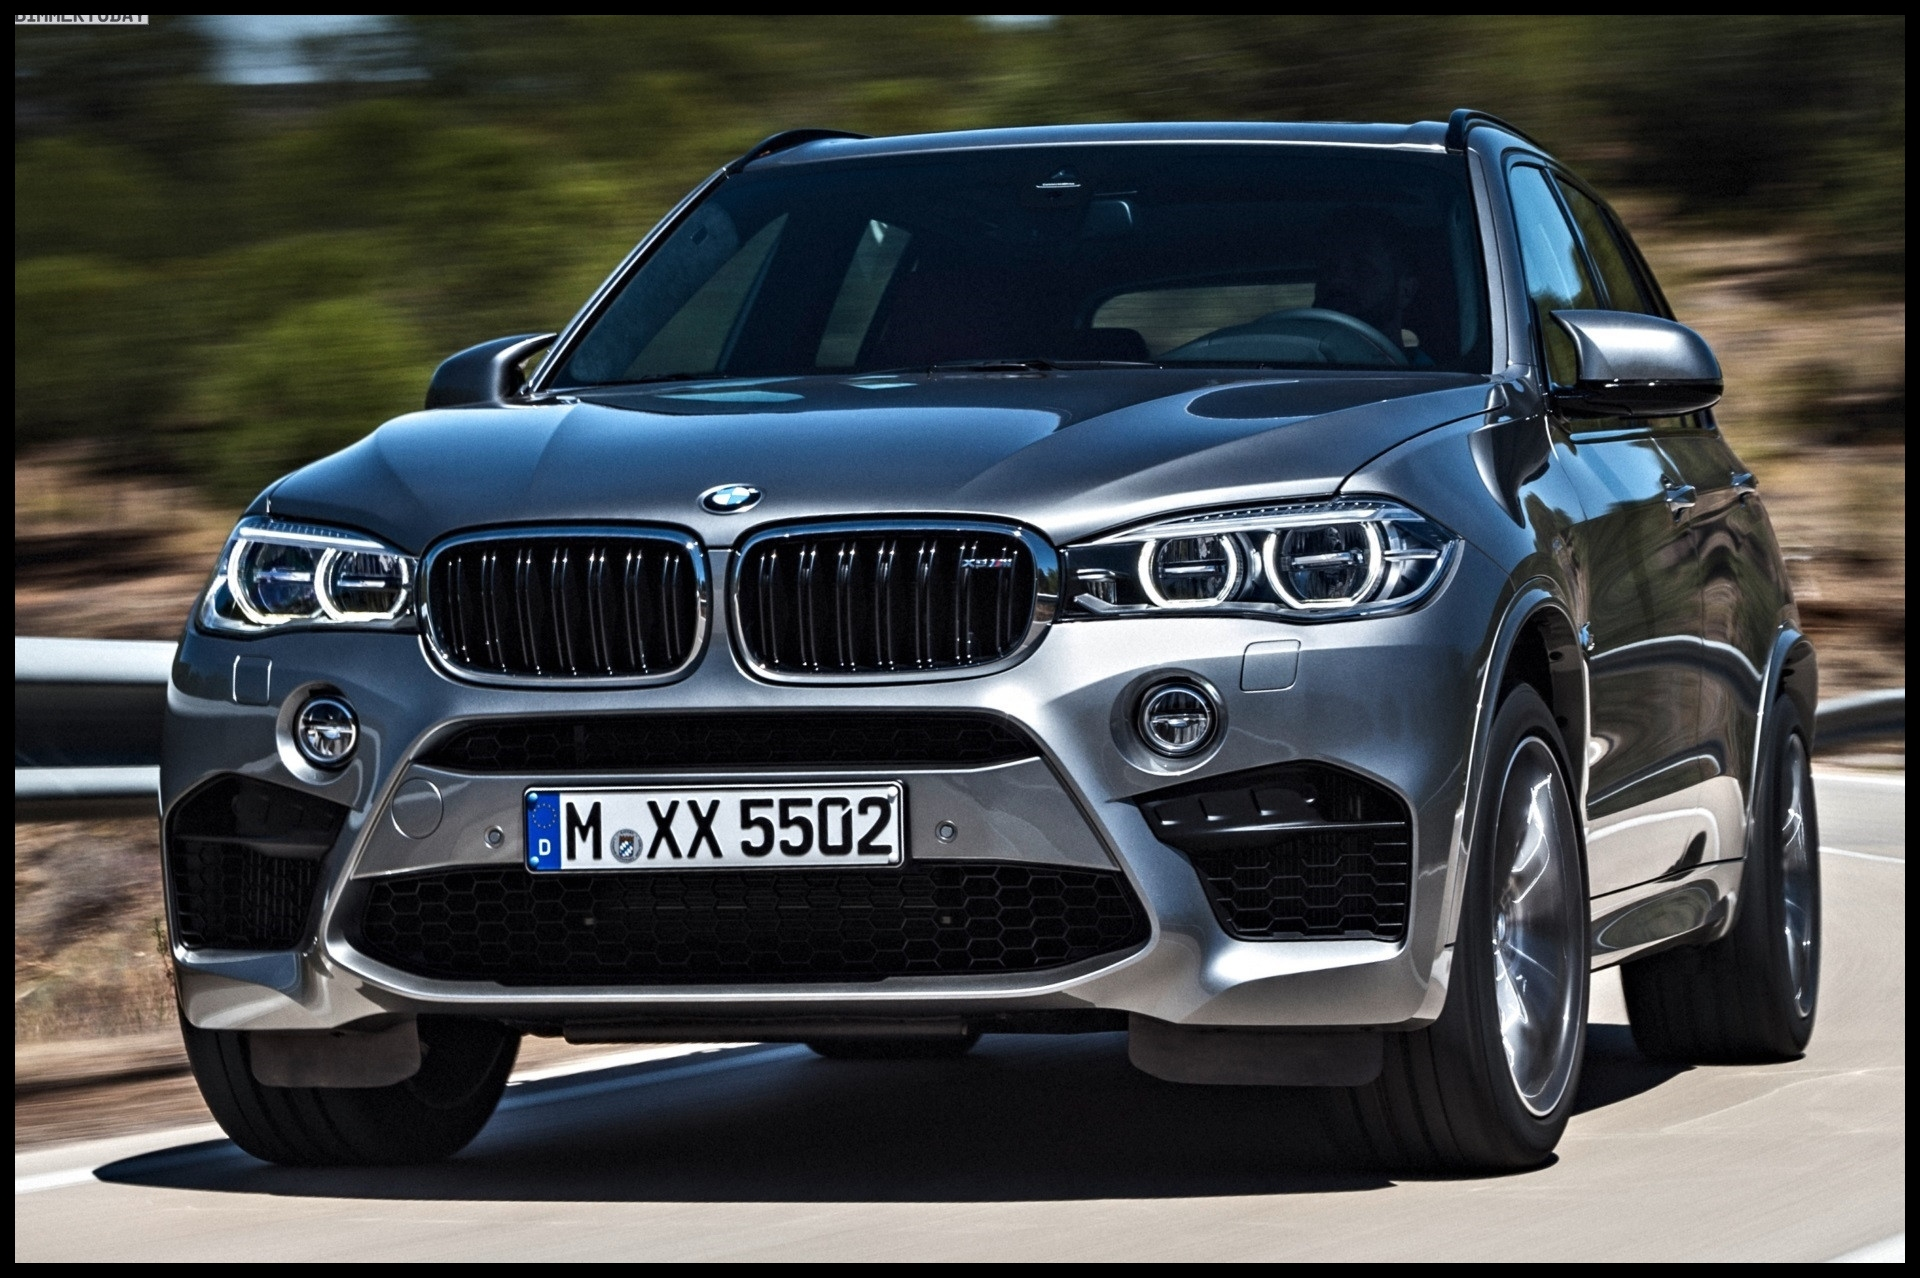 2018 Bmw X5 Launch Best 2017 Bmw X5 Just A Bit Current Changes and Pricing